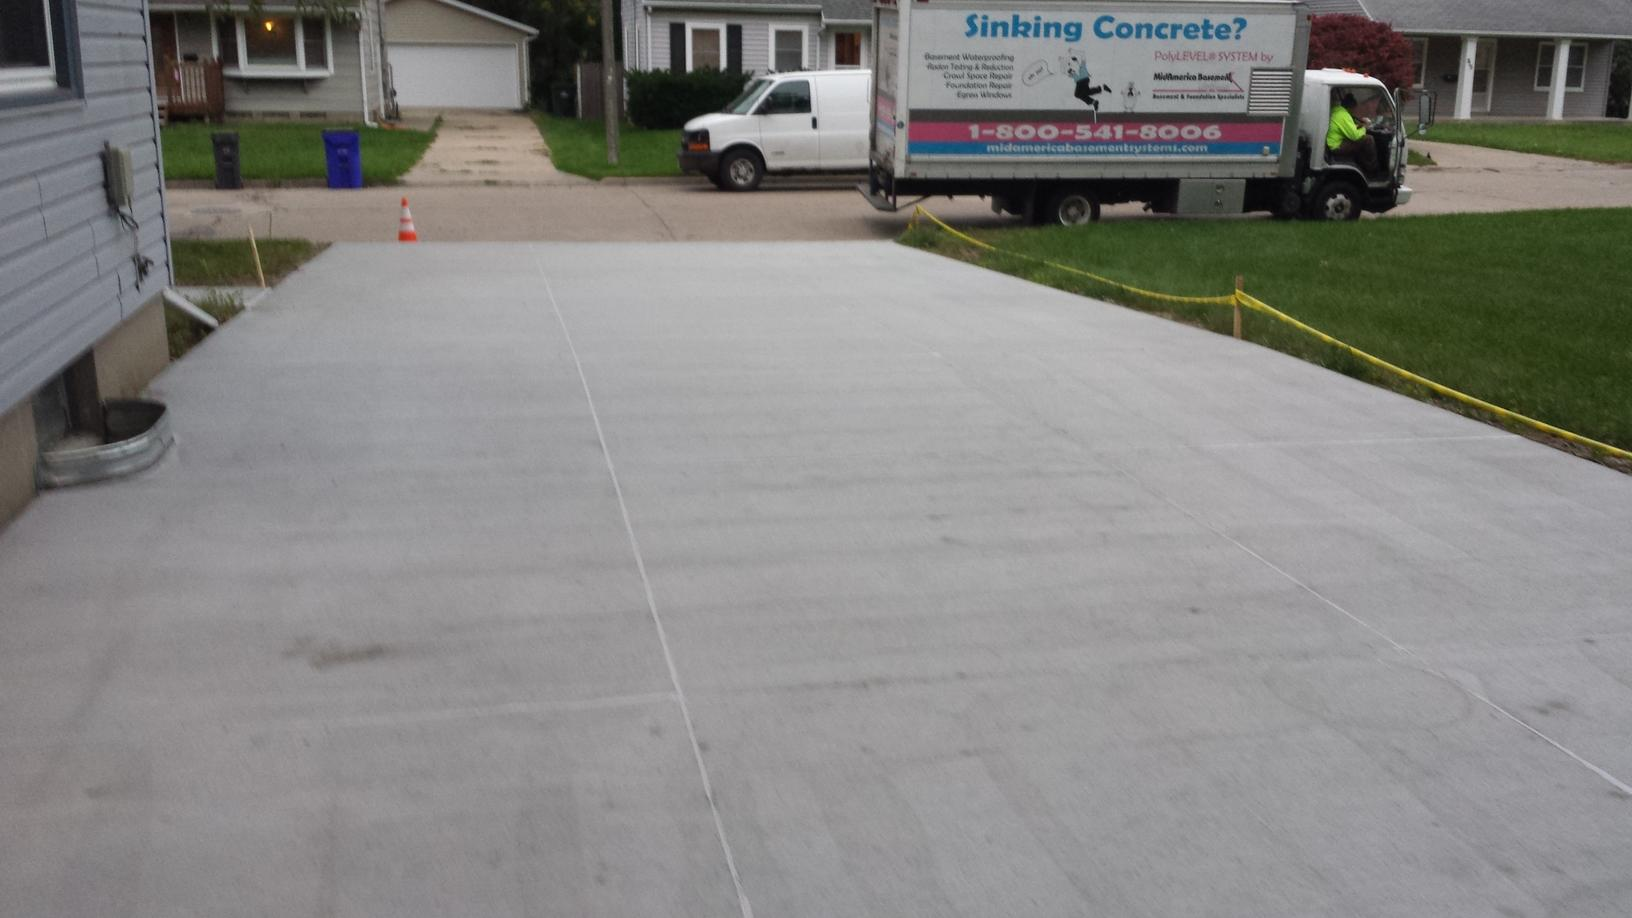 Full view of the driveway after it has been lifted and then sealed.